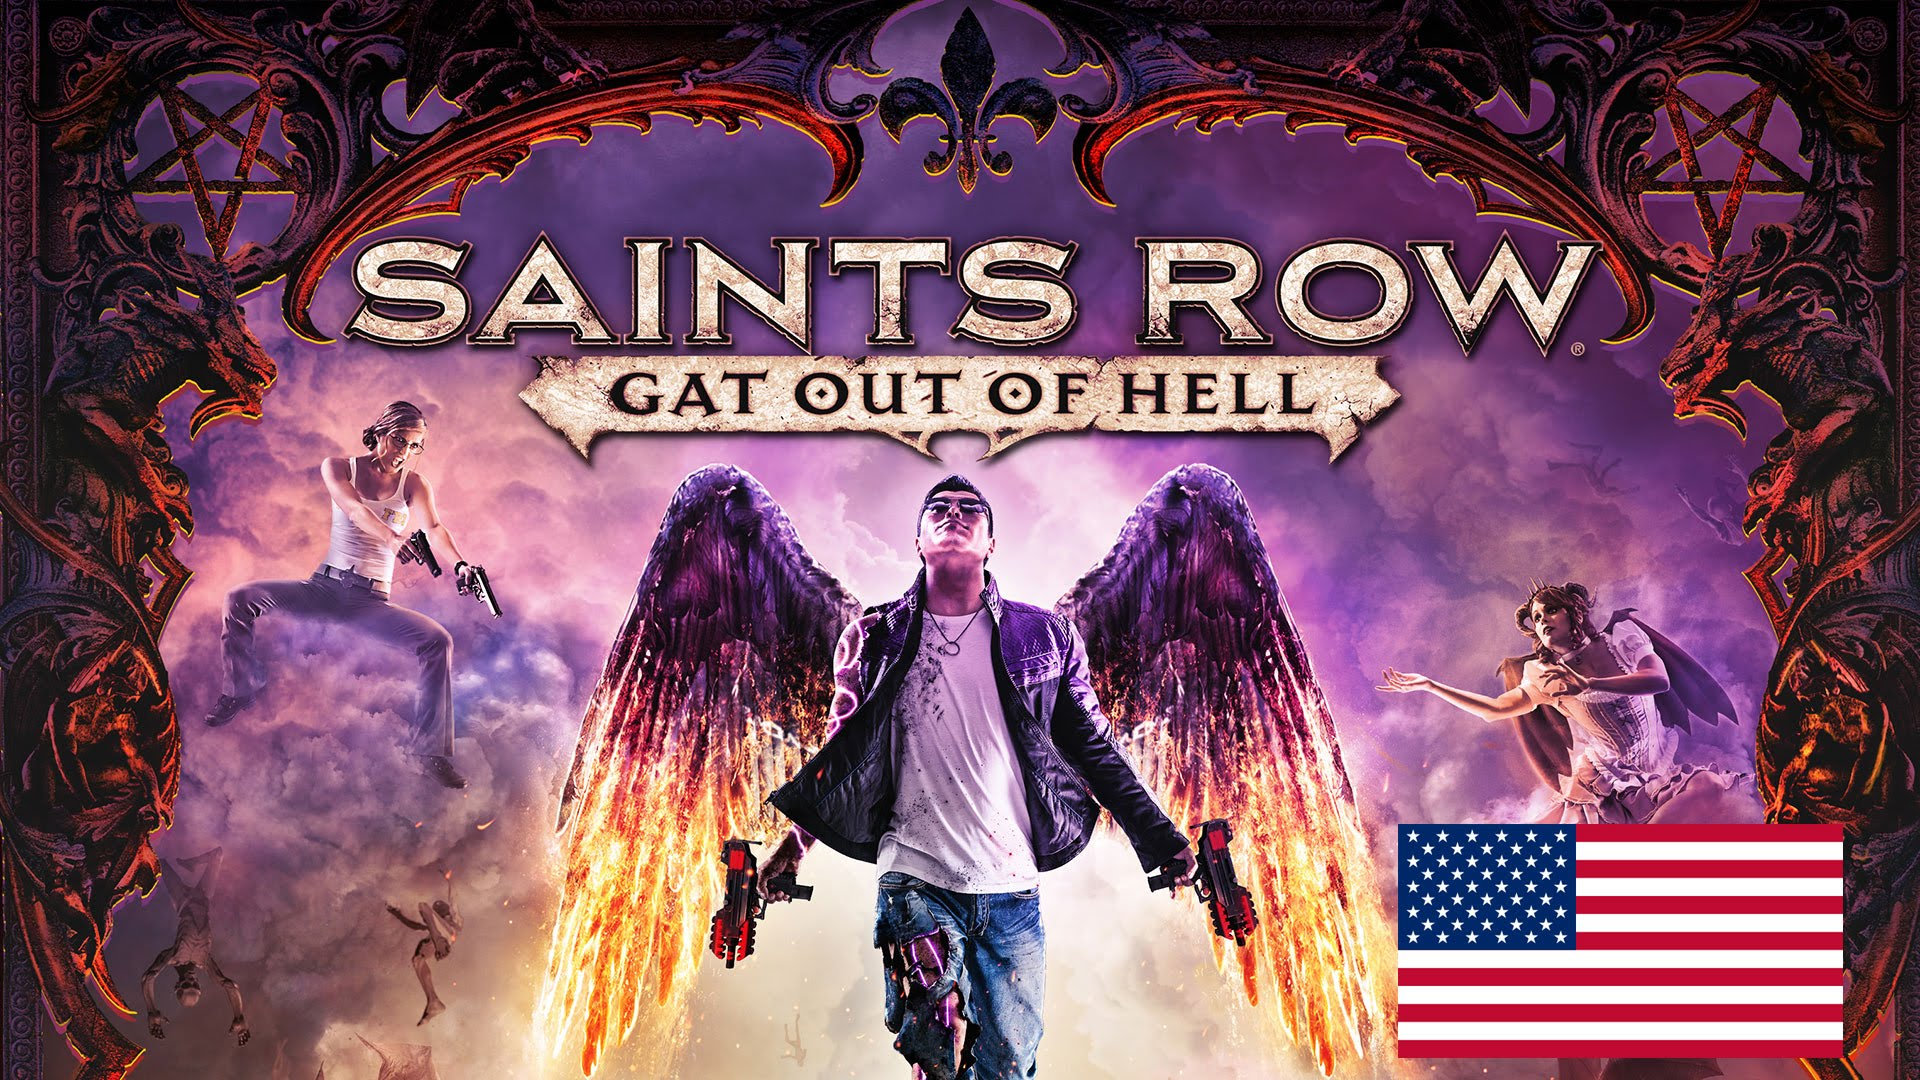 Saints row gat out of hell saints row gat out of hellivps4xb1 voltagebd Images